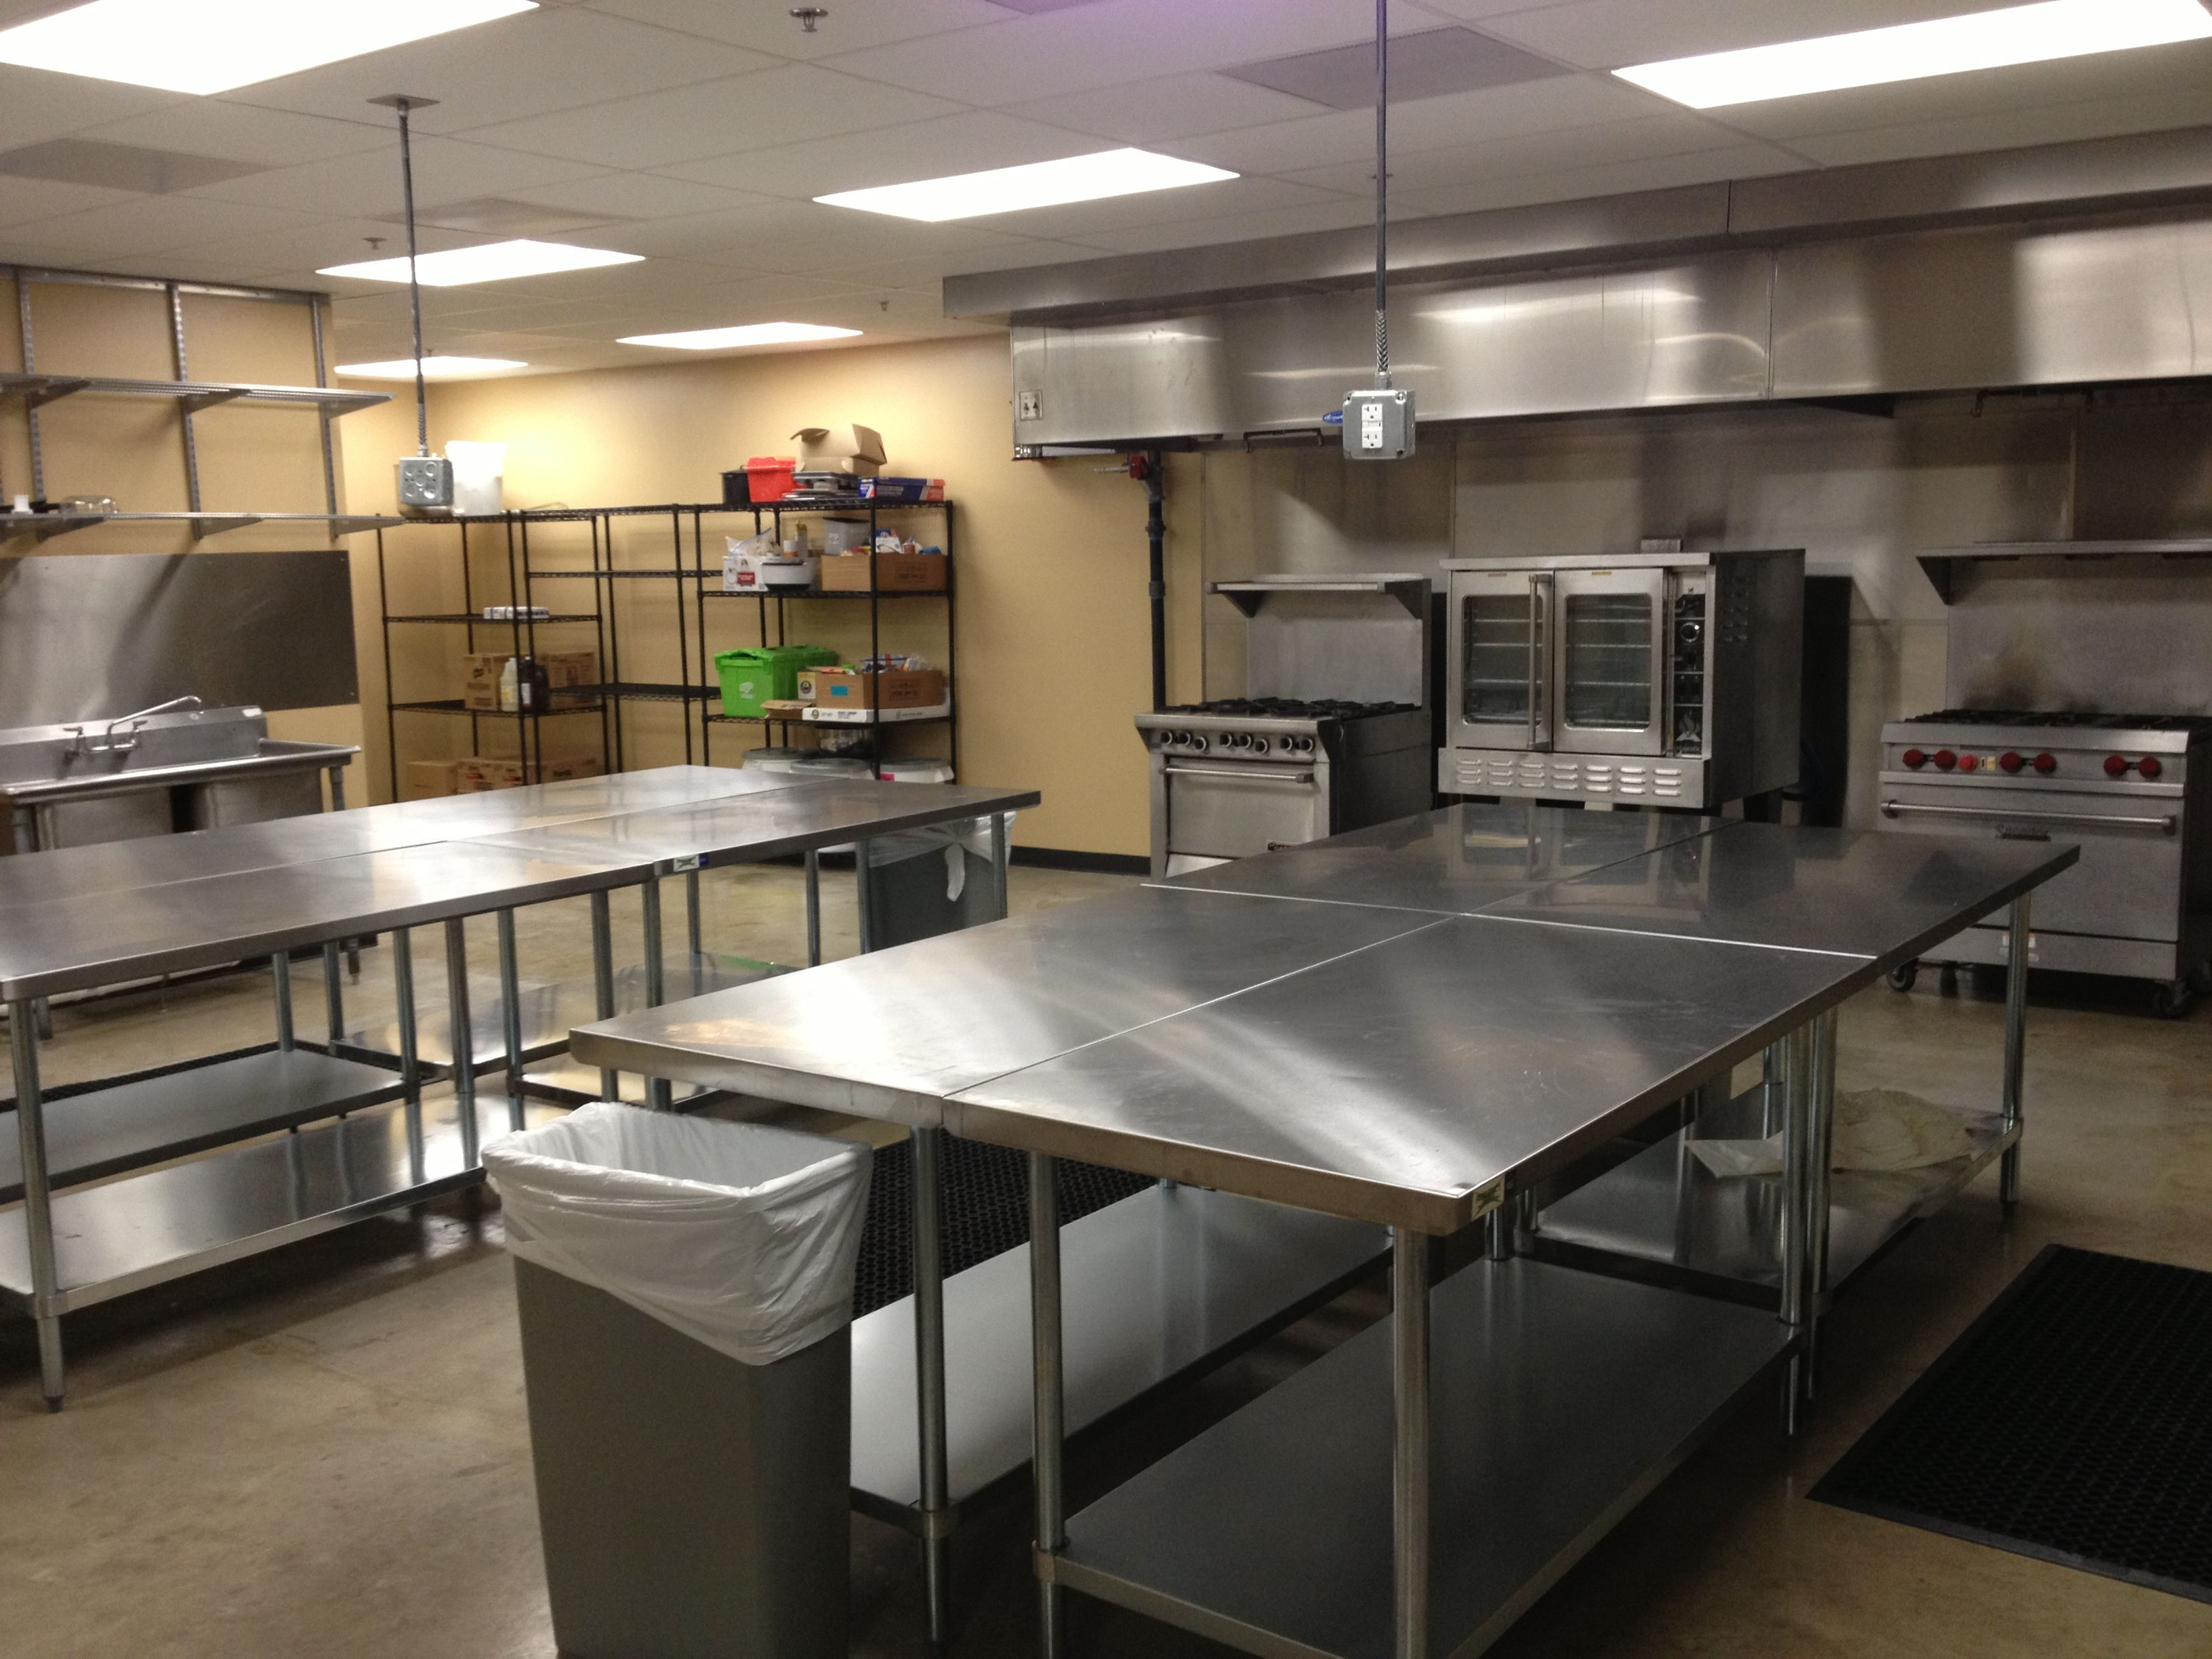 Local Commercial Kitchen Space Available 20 Hr Commercial